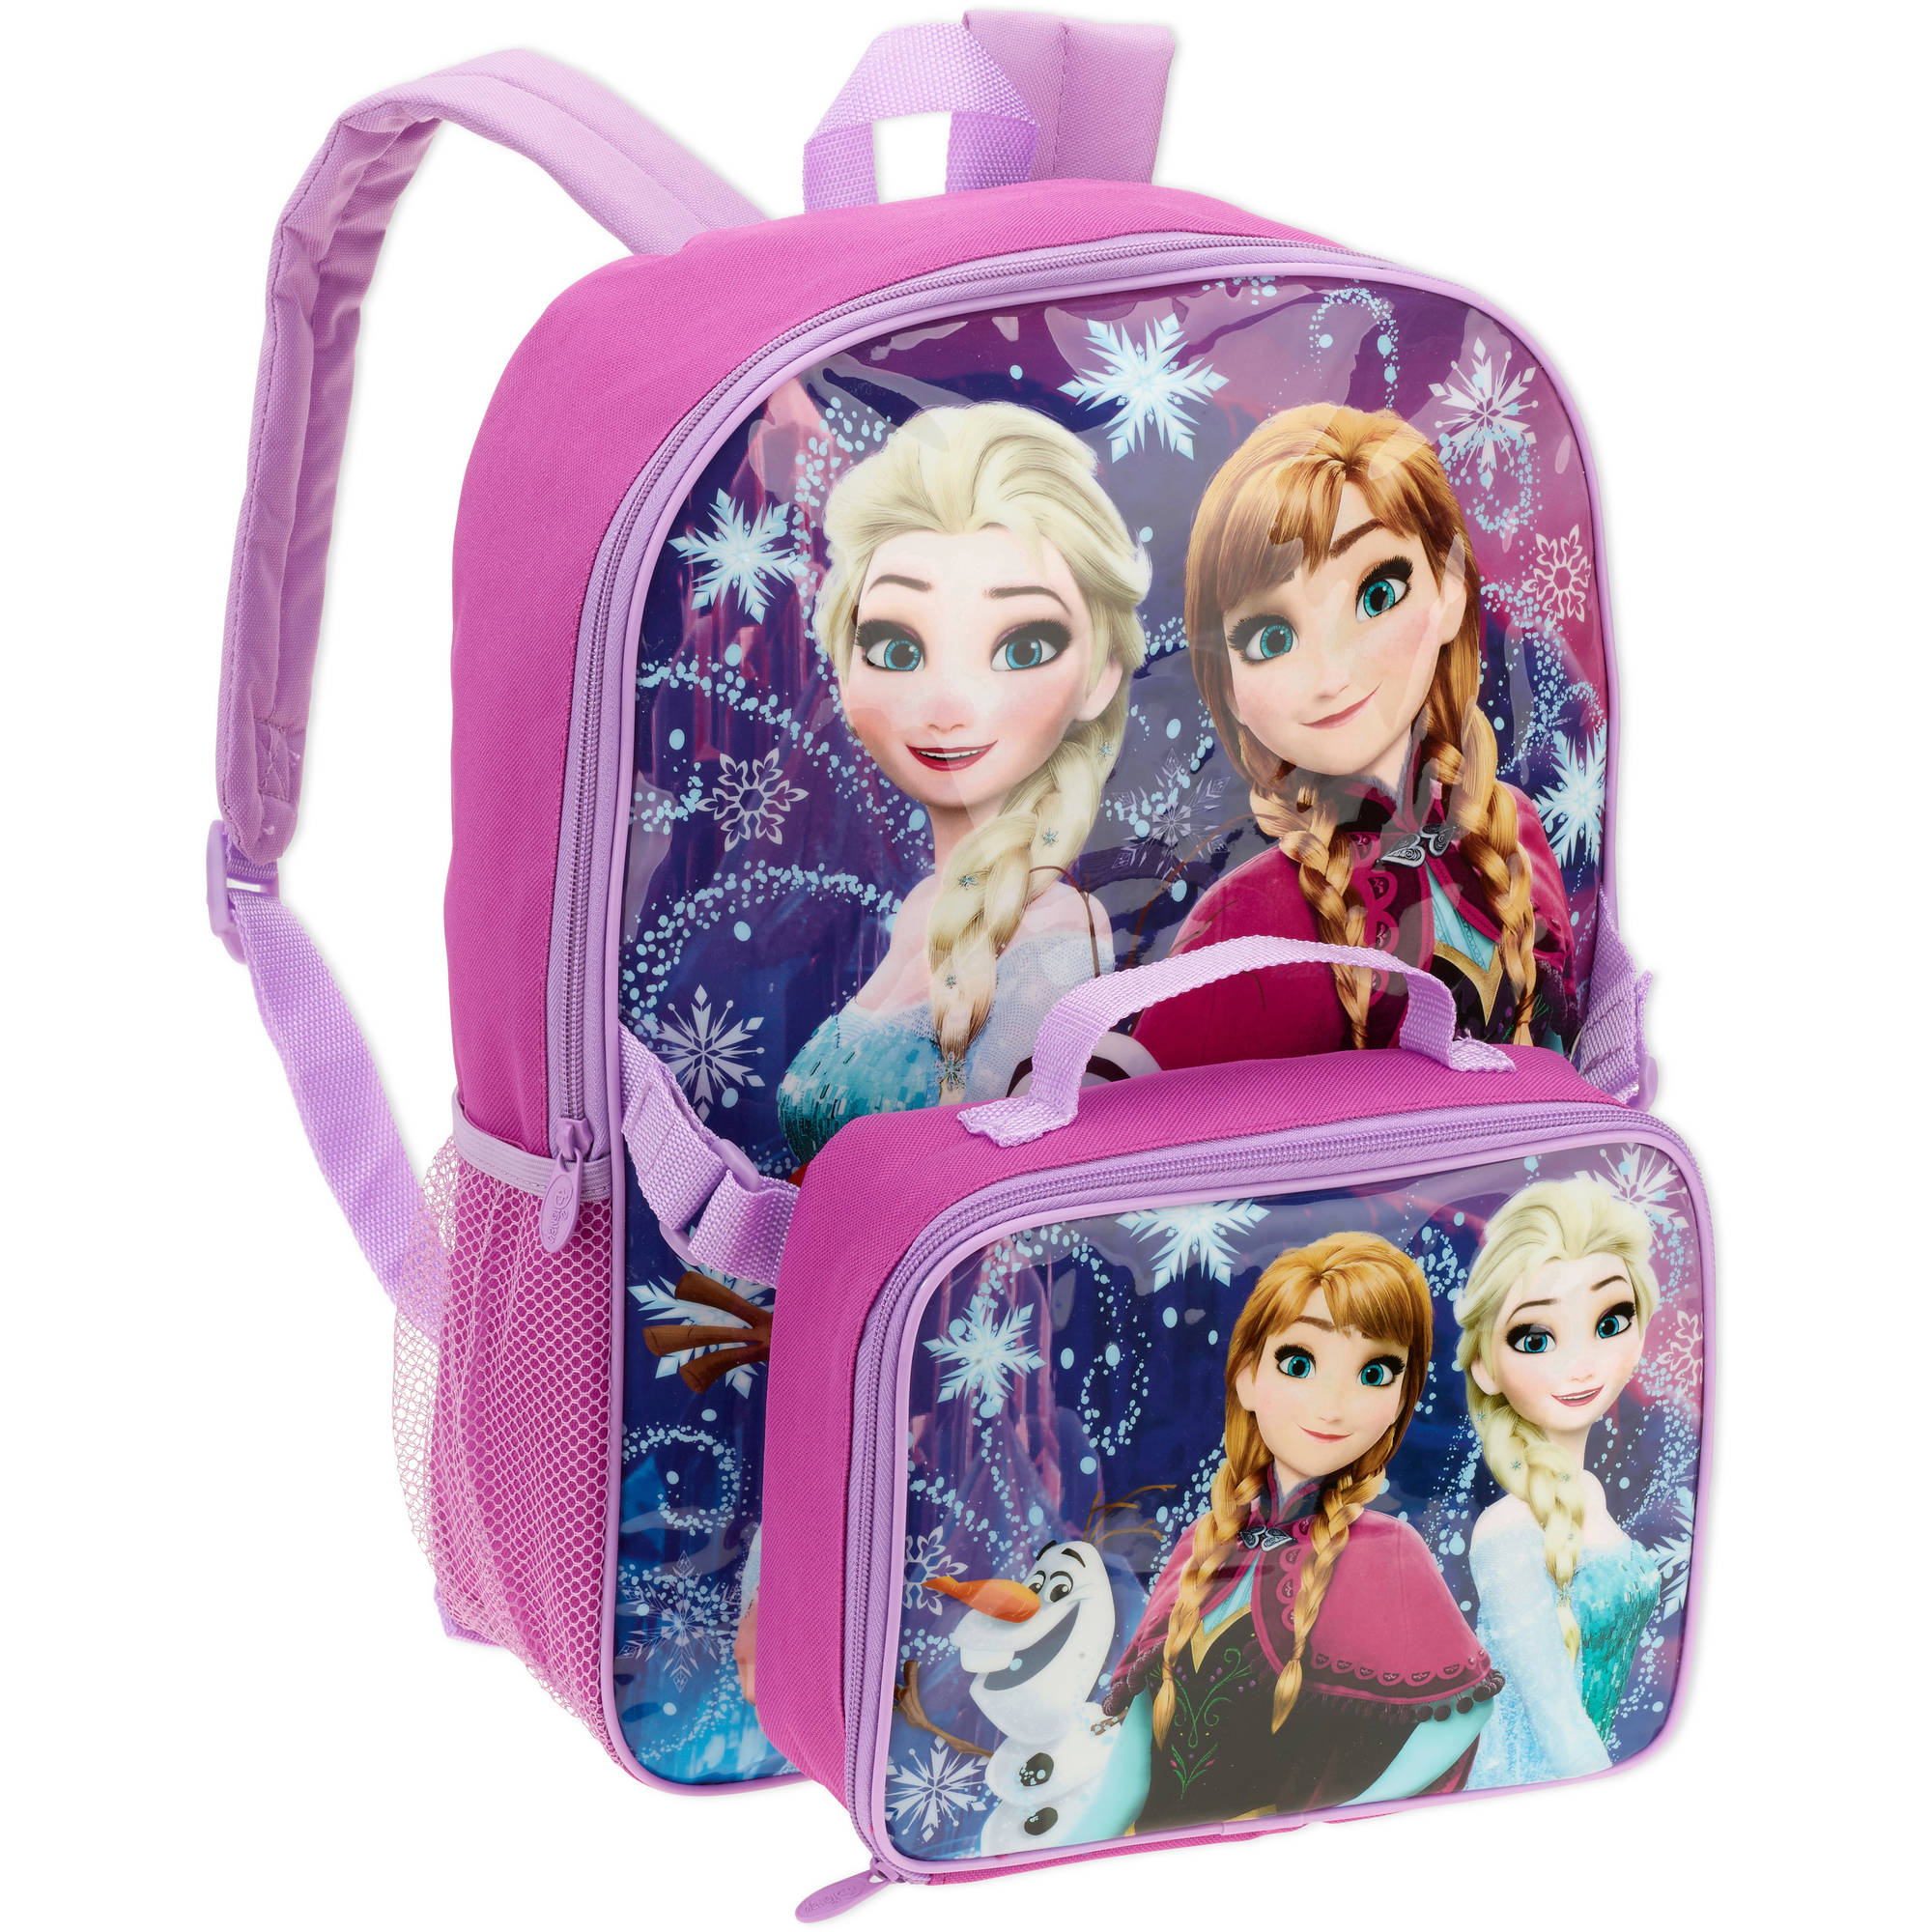 Disney Frozen Backpack with Lunch Box